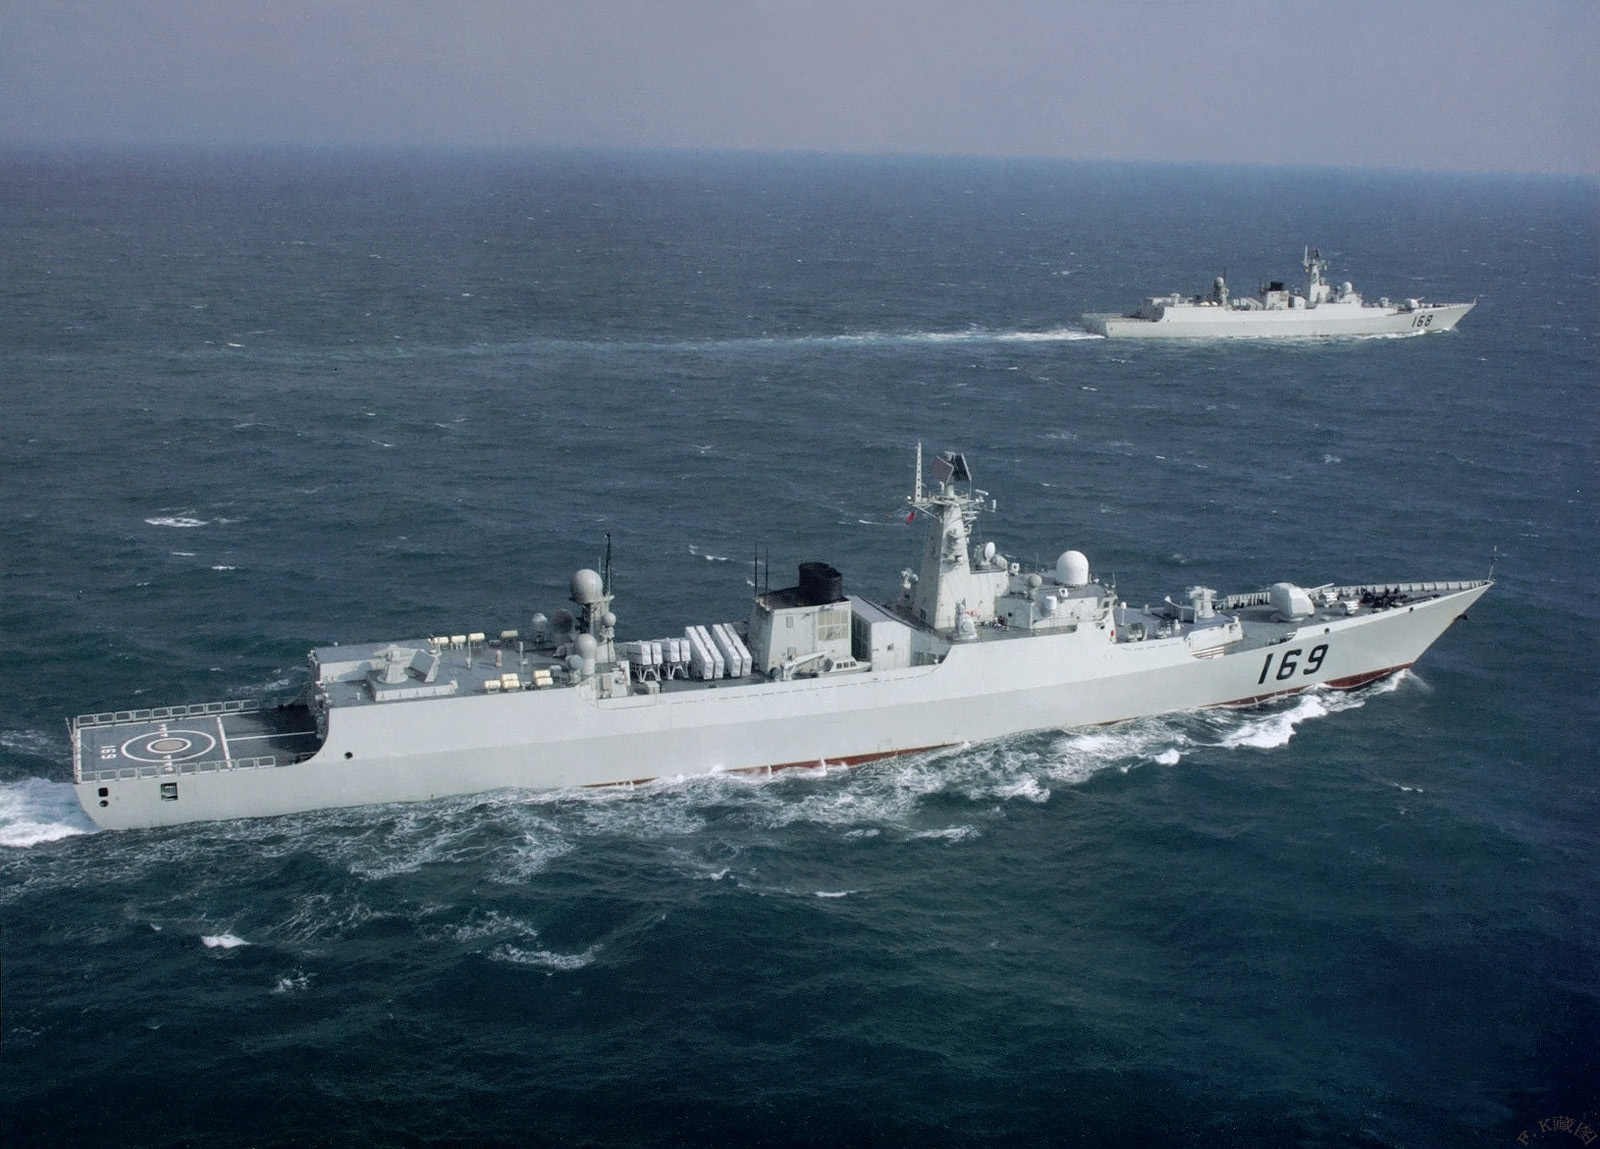 China Navy Ships Military http://china-defense.blogspot.com/2011/07/9th-plan-task-force-to-gulf-of-aden.html